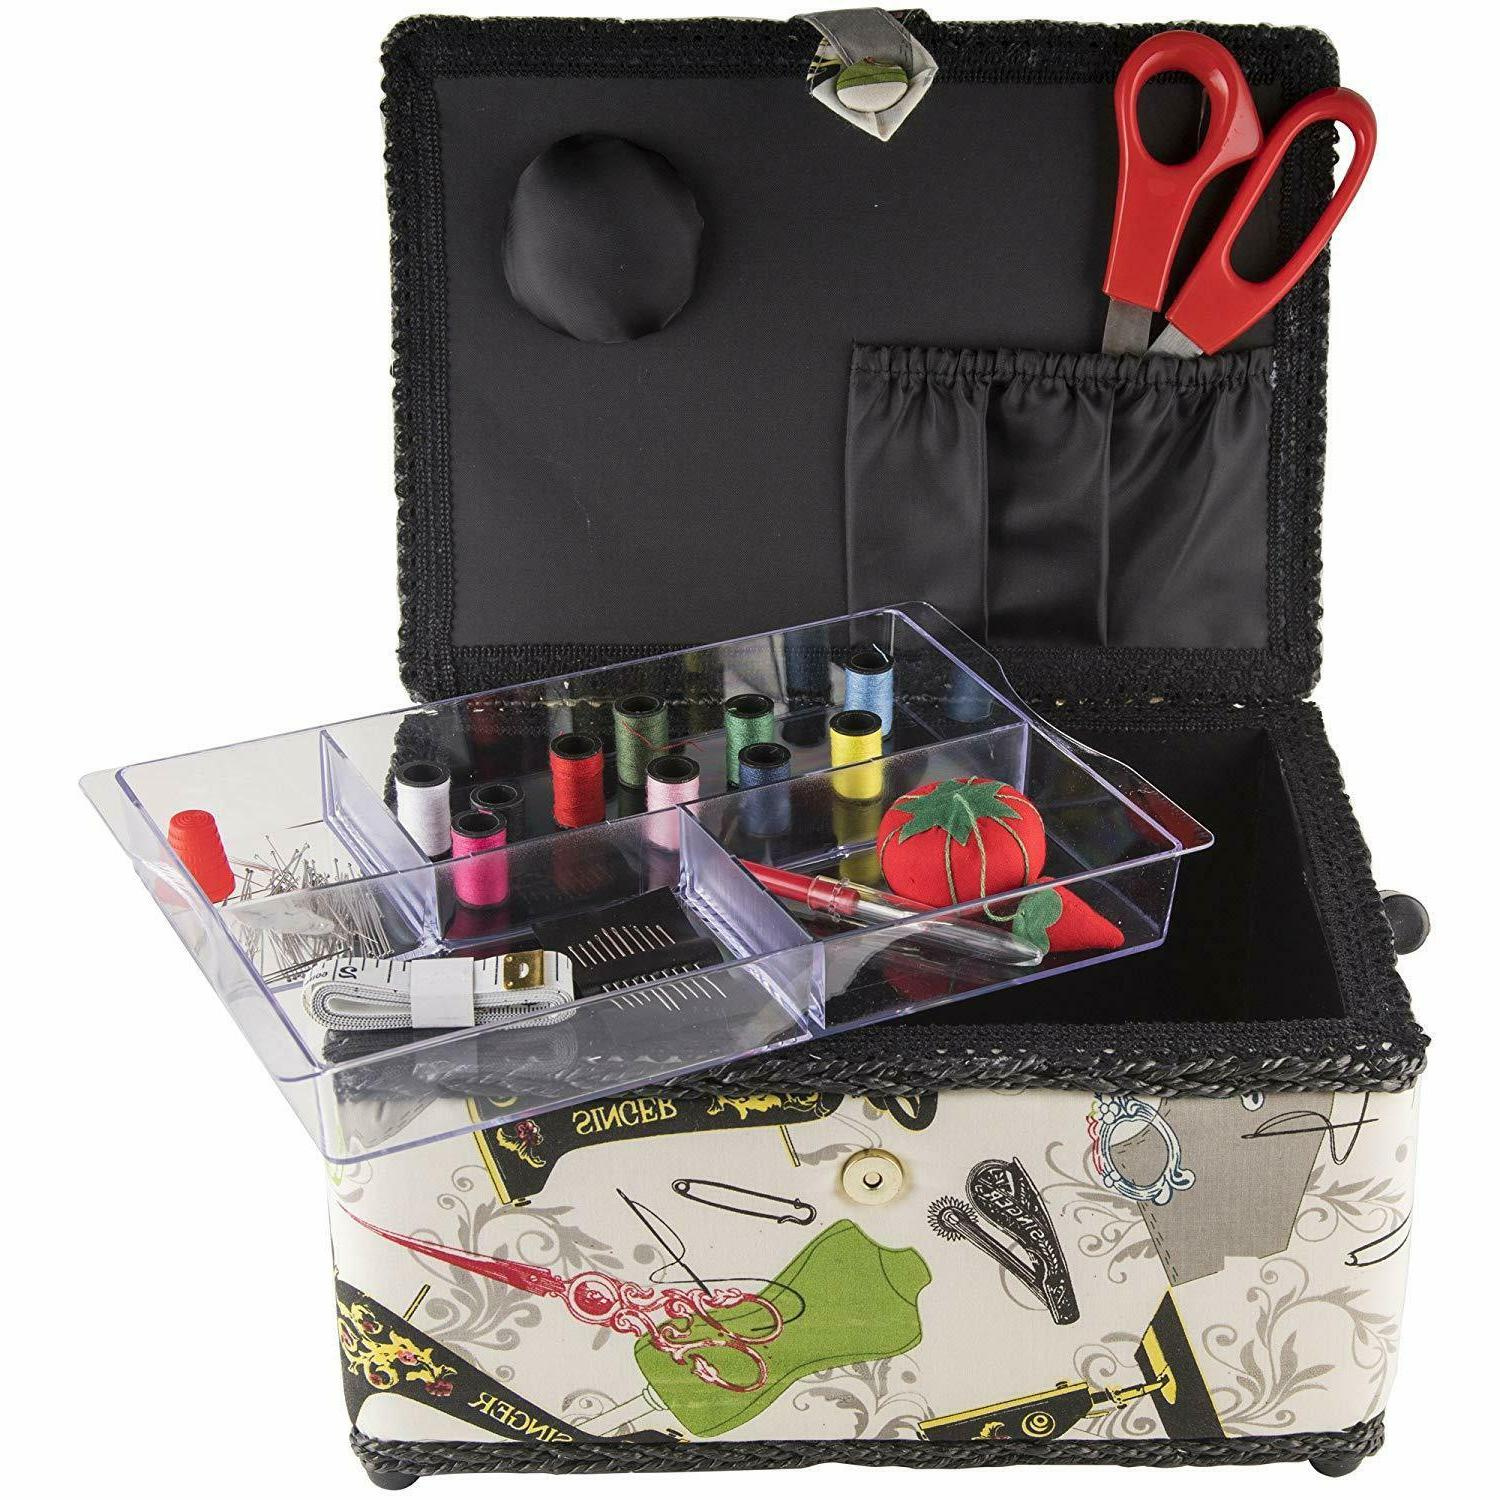 Large Sewing Storage Box Vintage Organizer With Accessories